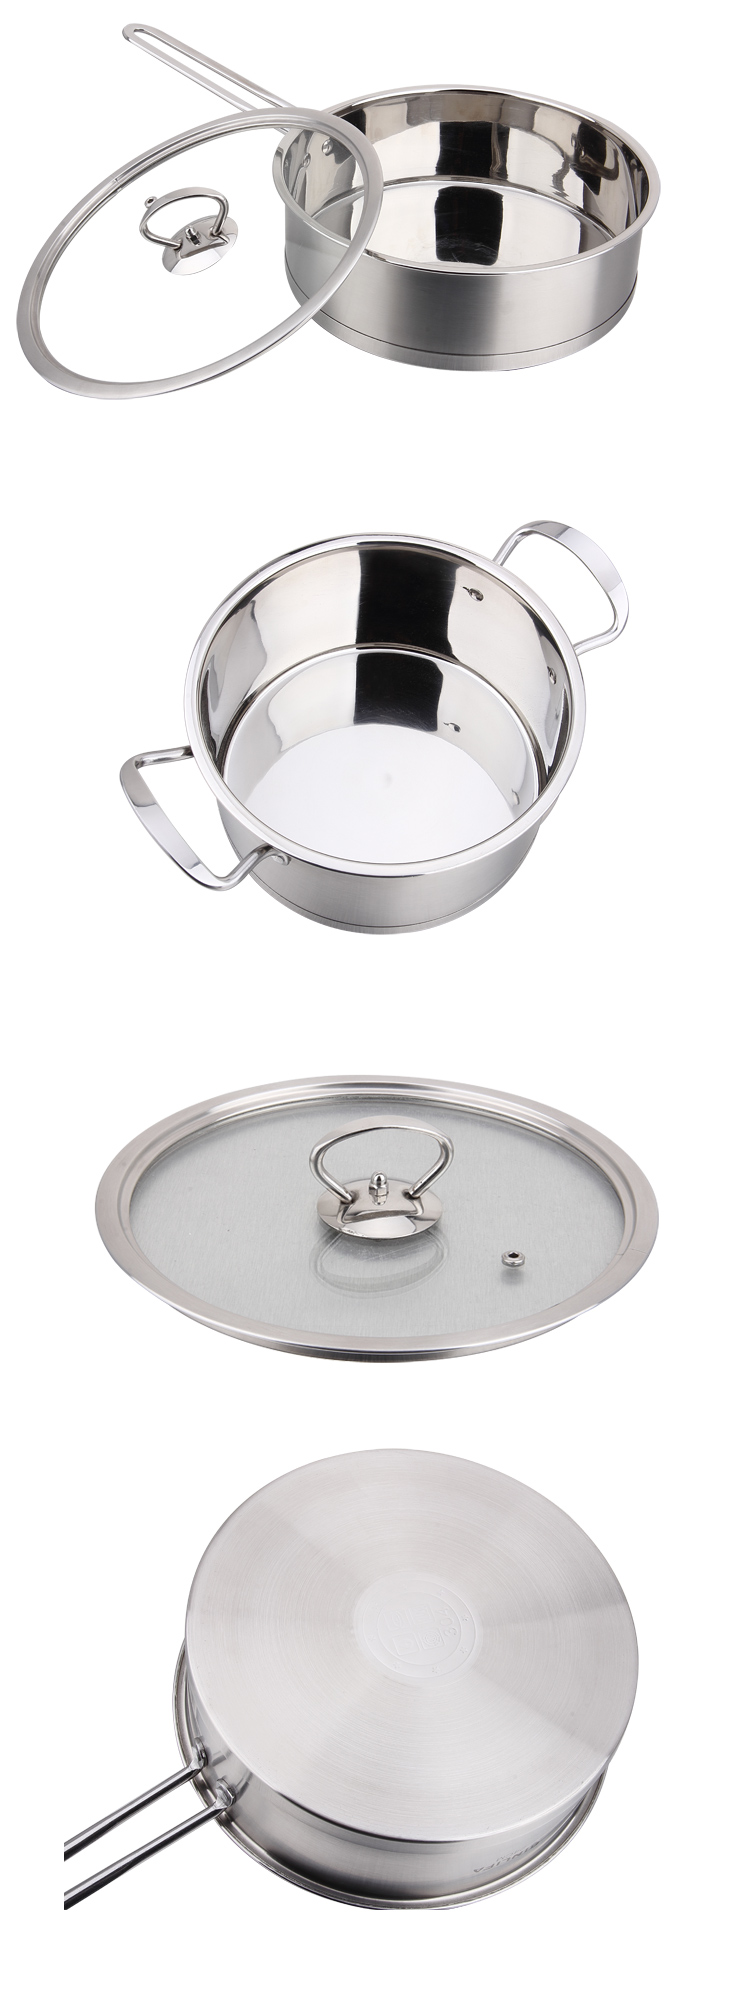 304 Stainless Steel Right Angle Soup Pot with Two Handle